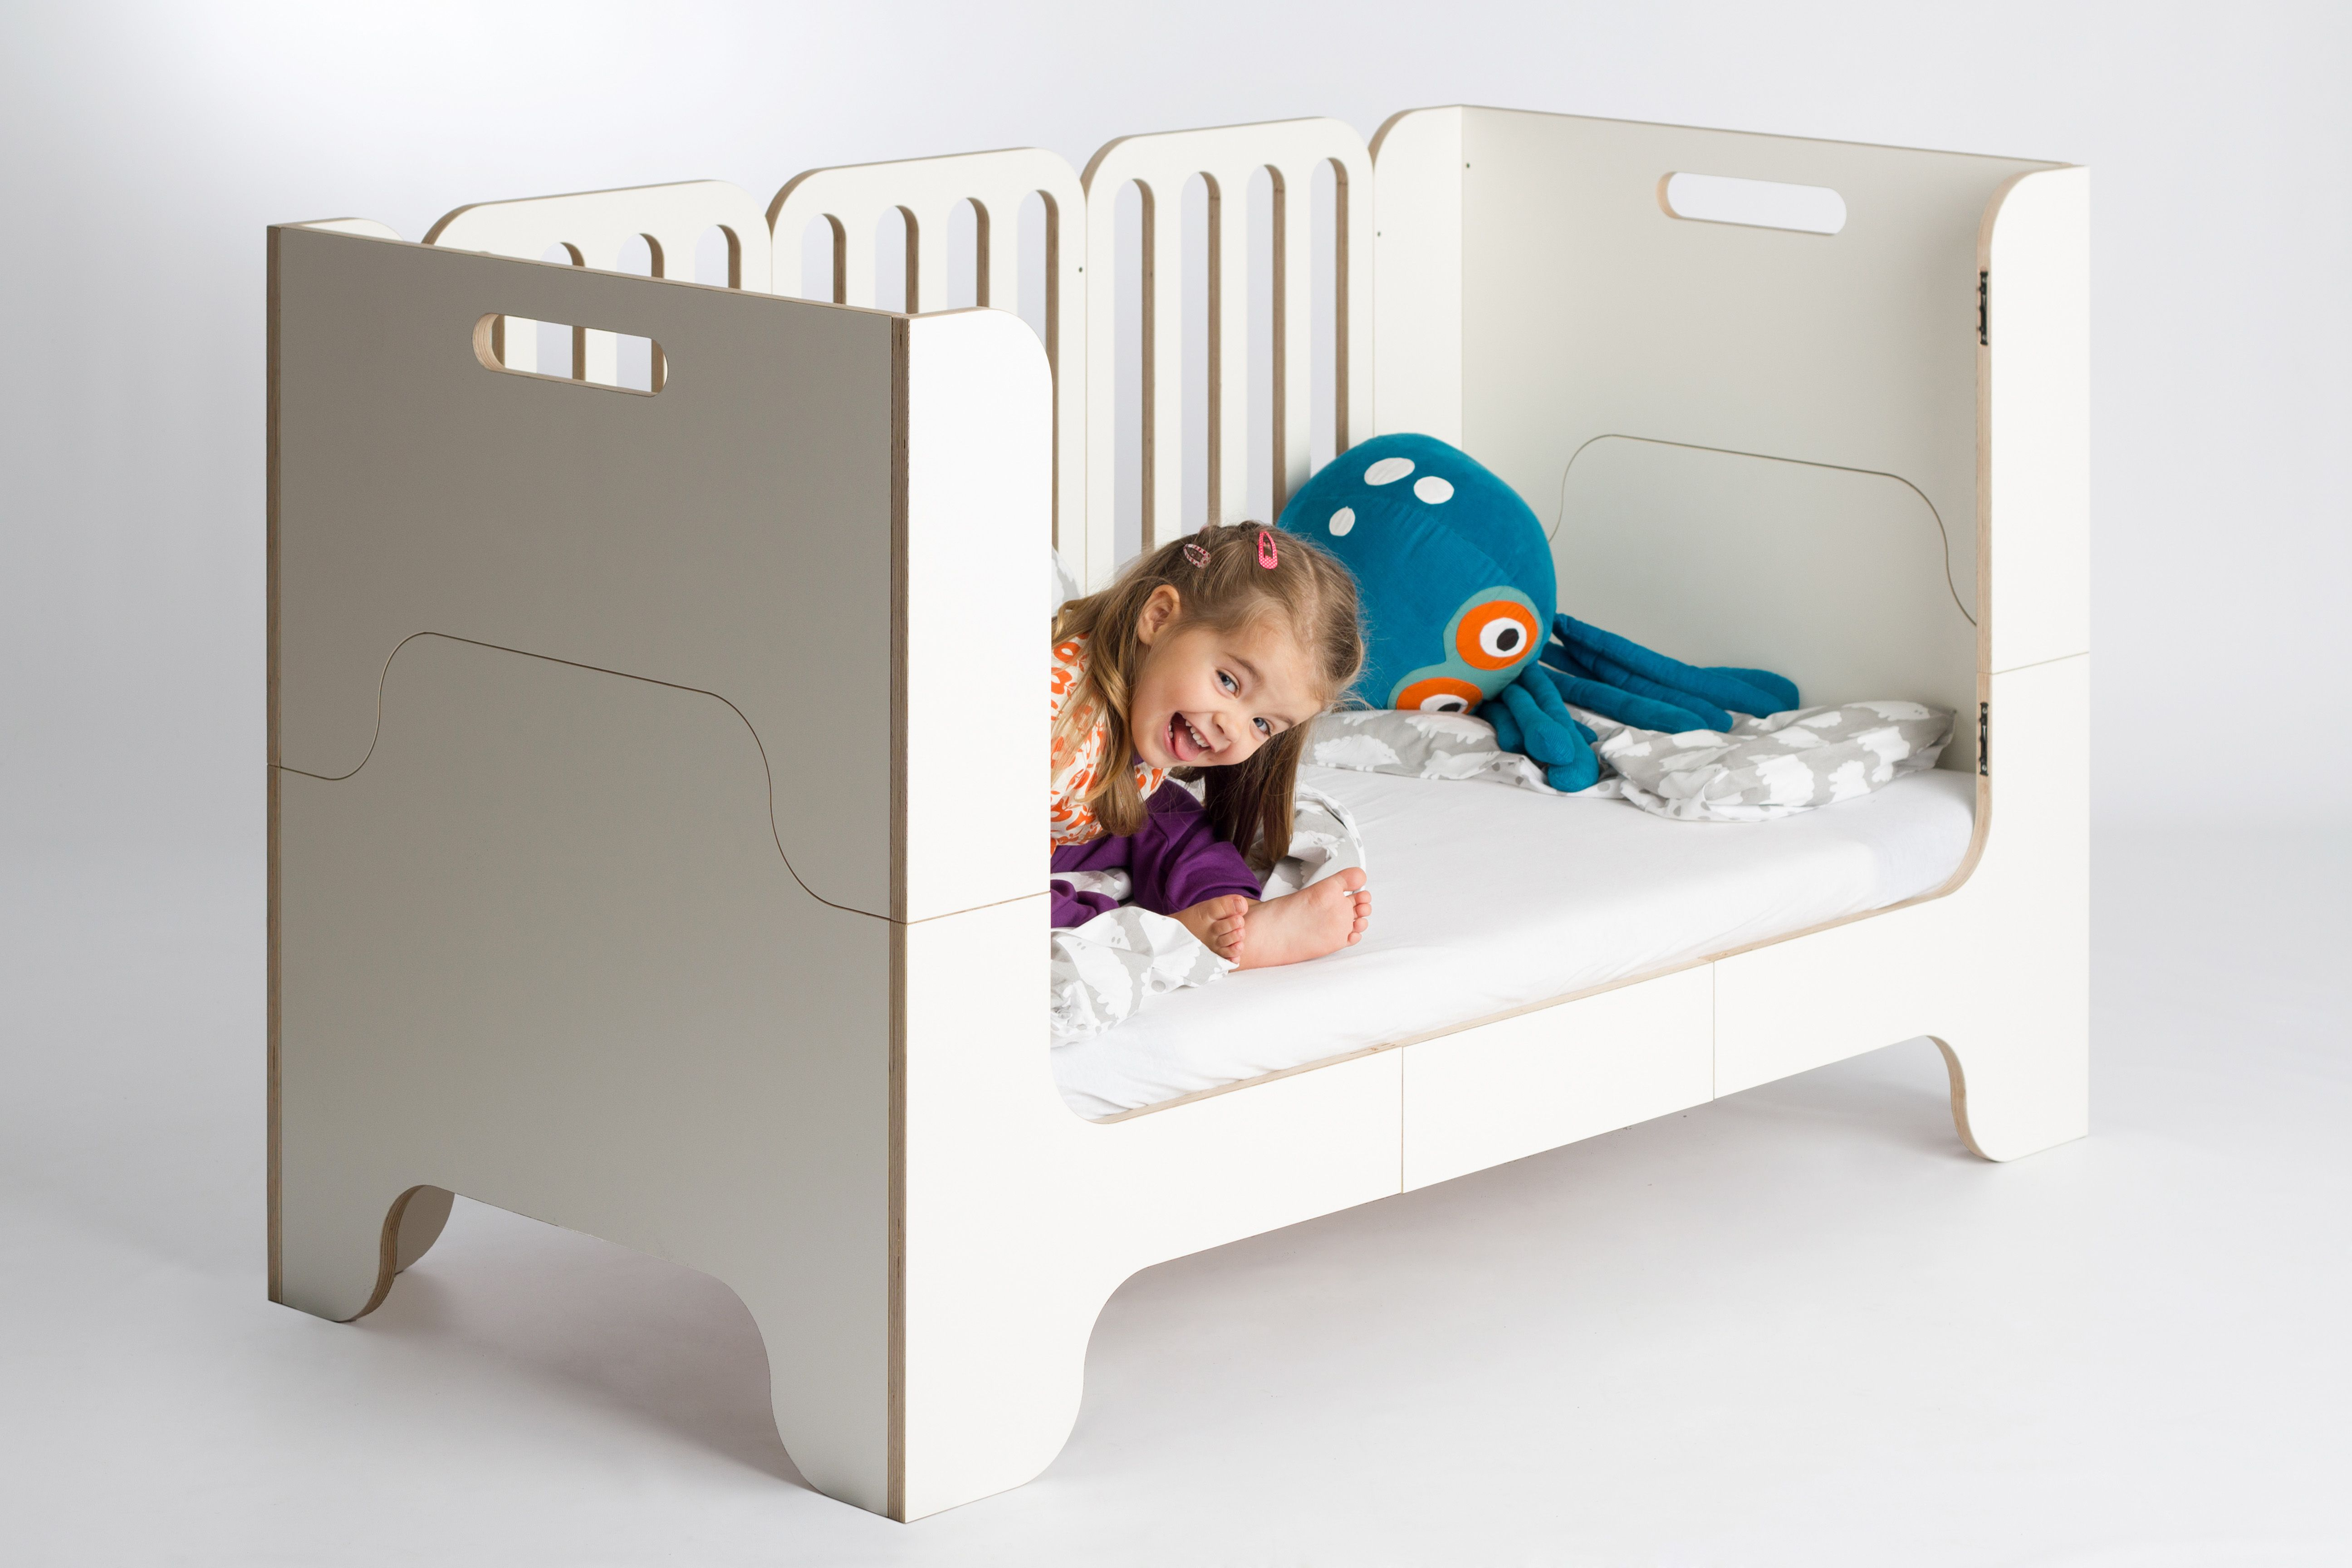 Minimalmaxi growing bed for children by wilja afilii design for kids